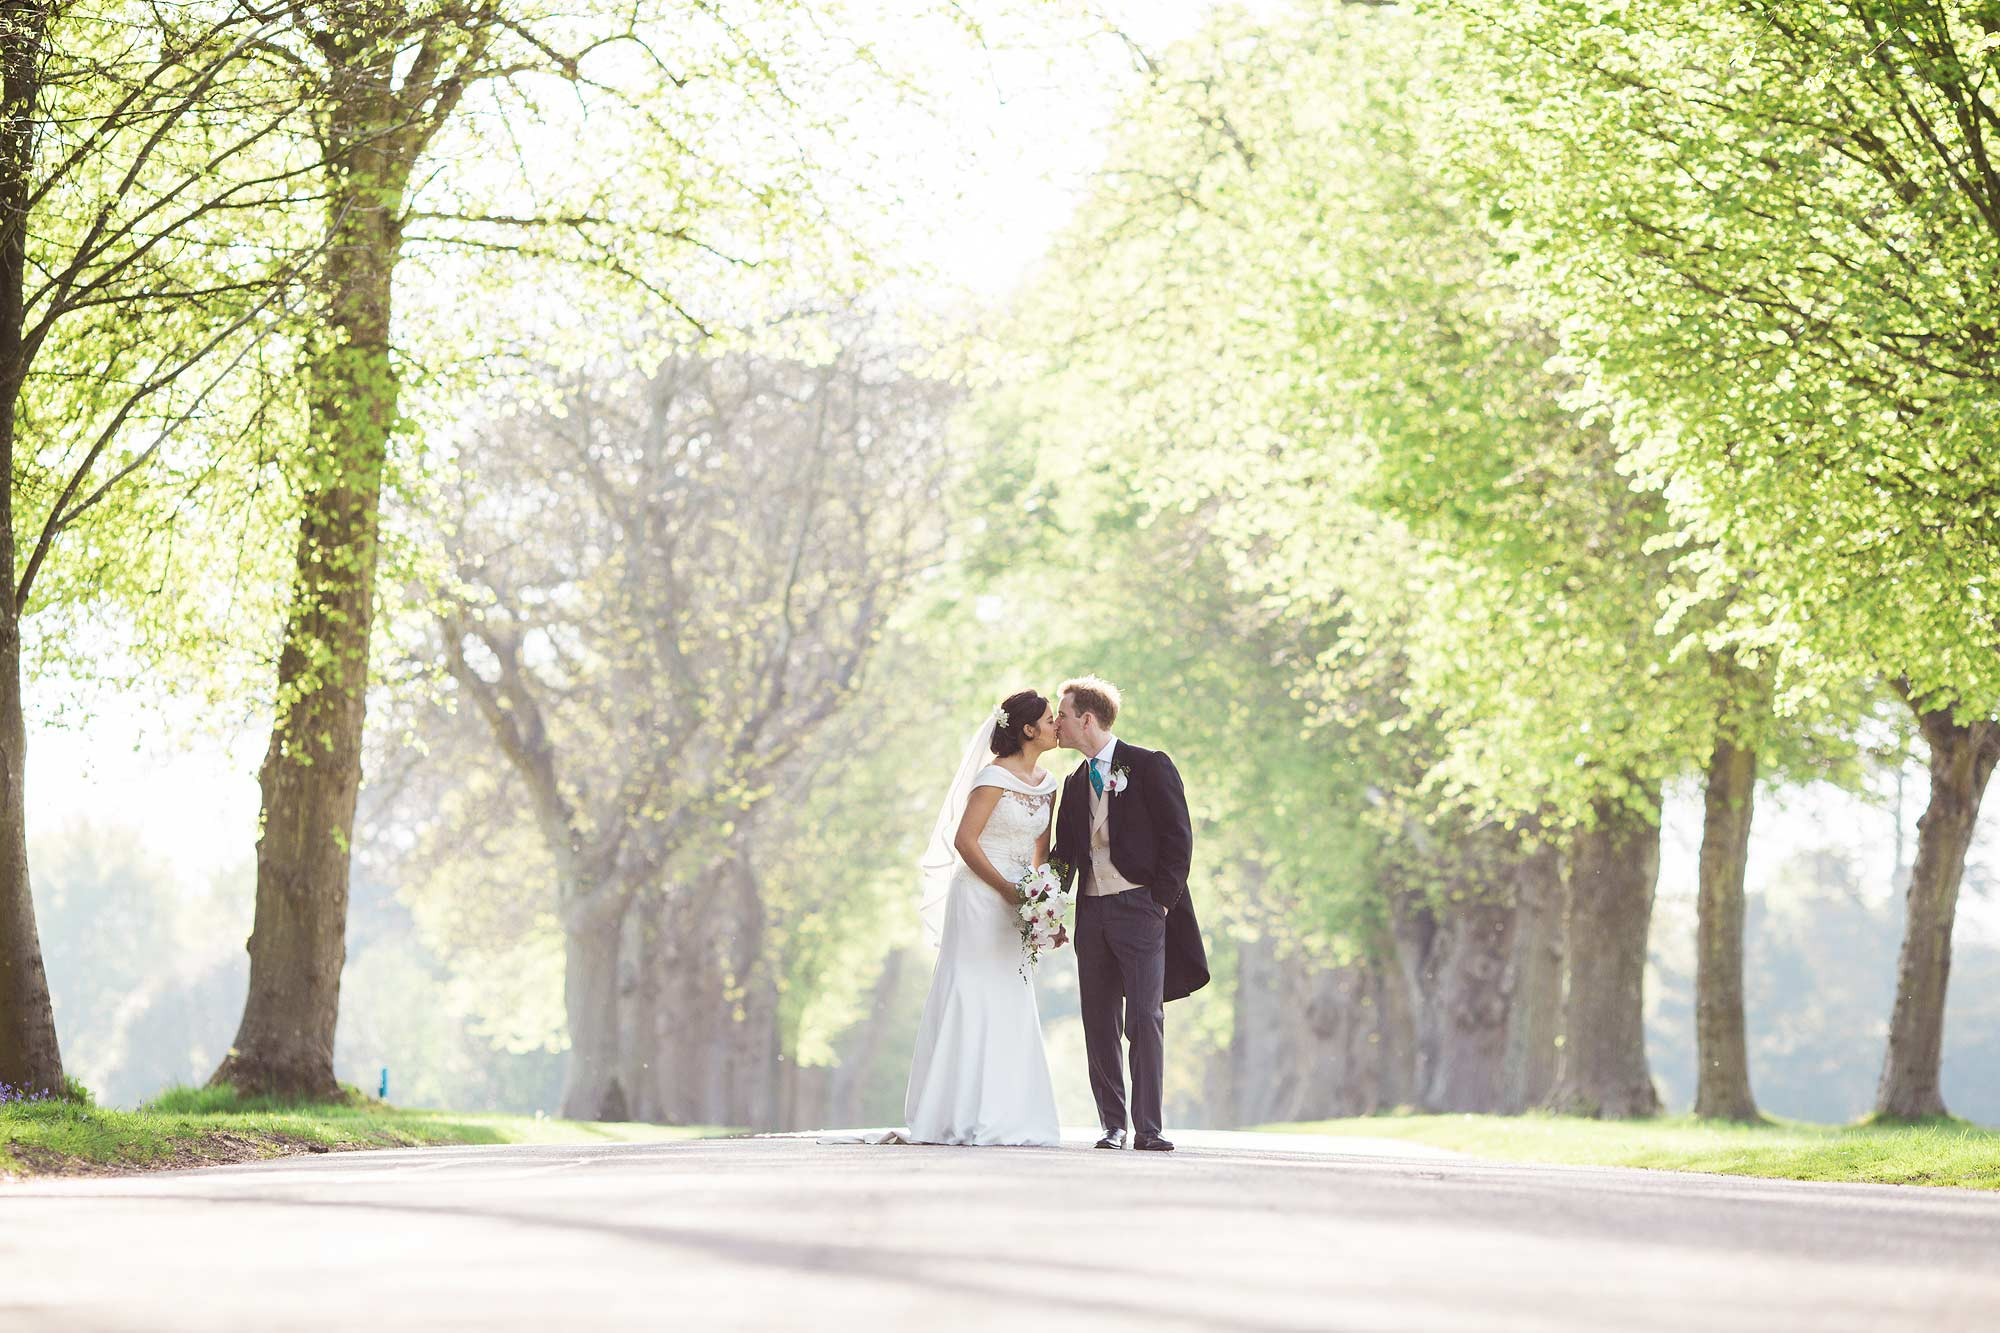 Wedding portraits at Goodwood House Avenue of trees